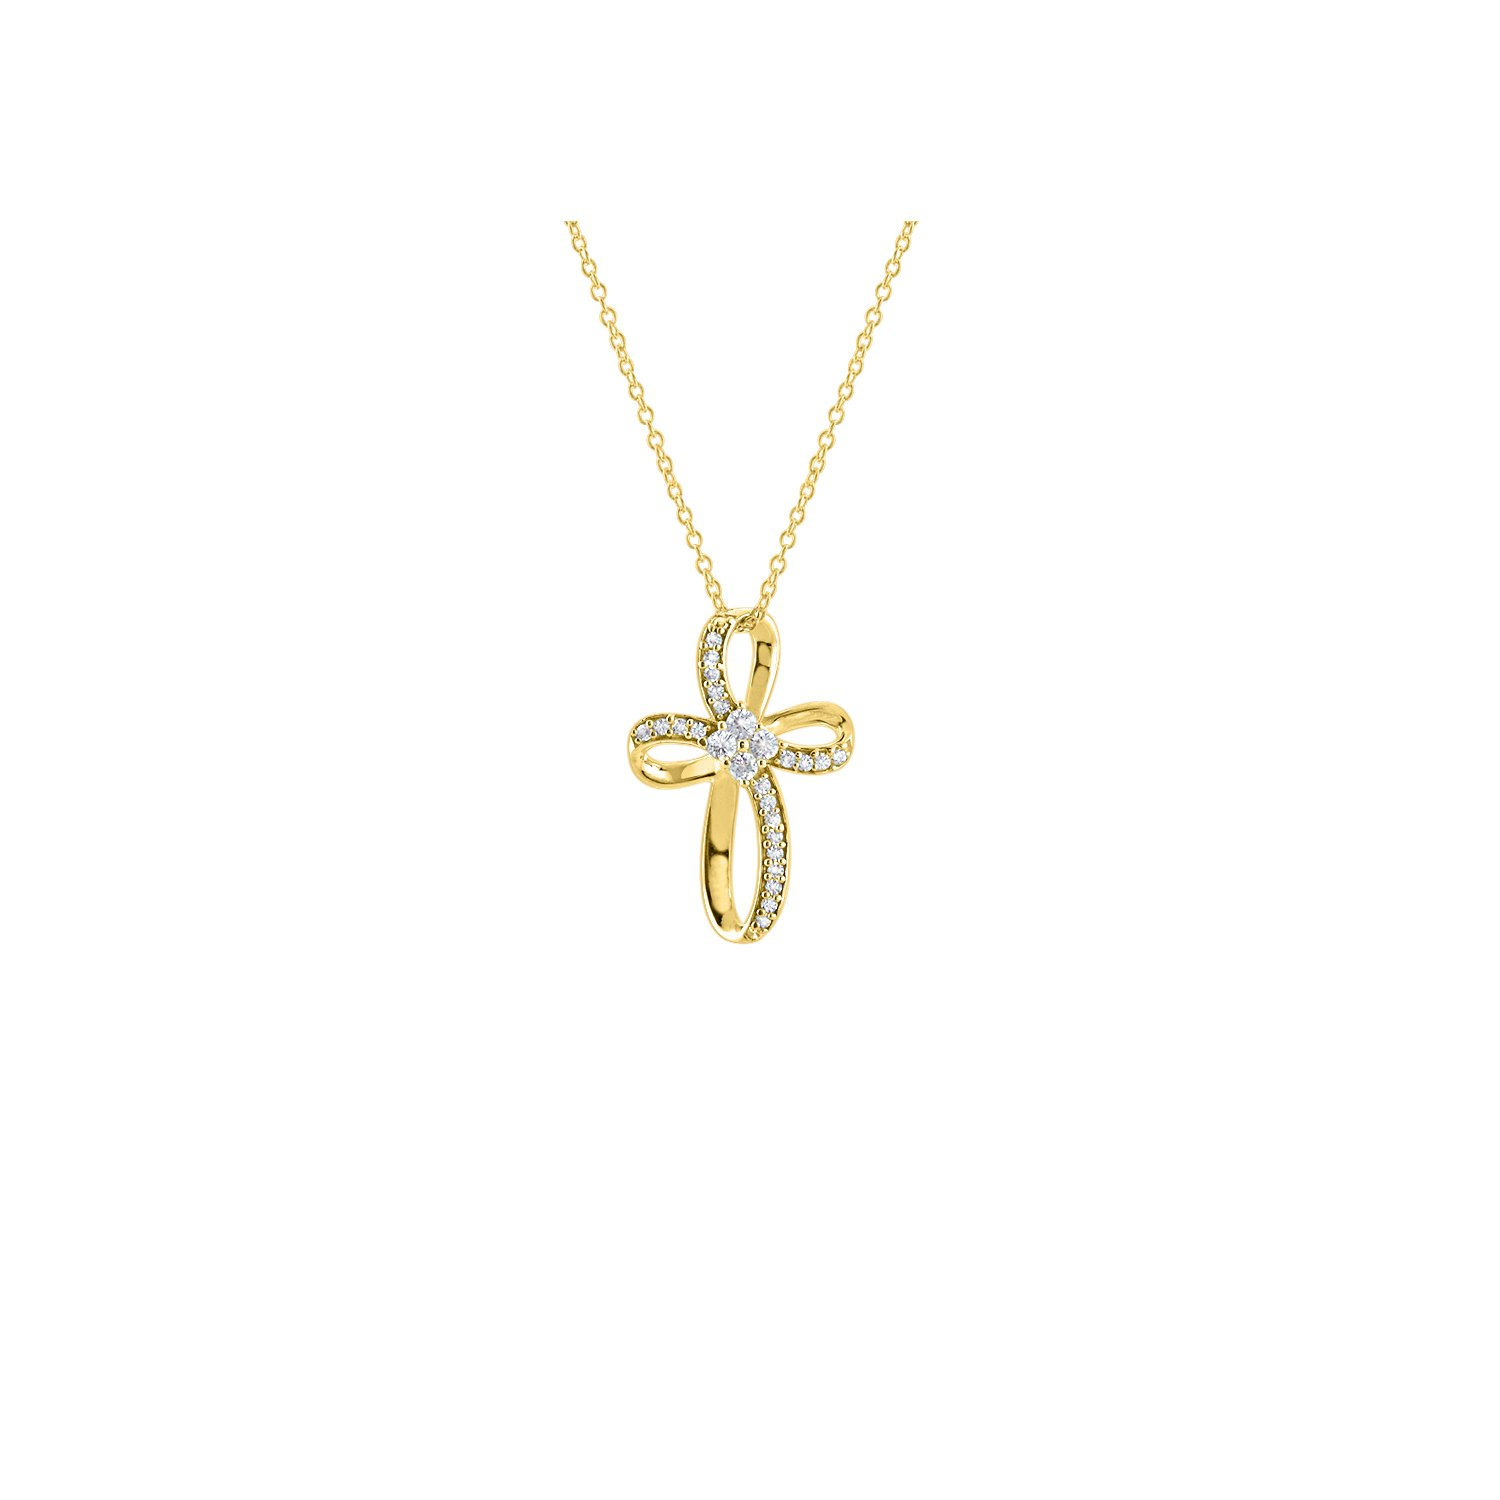 DiscountHouse4you 0.30 ct Round Cut Cubic Zirconia Infinity Knot Loop Cross Pendant Necklace Religious Jewelry Birthday Gift 14k White Gold Over